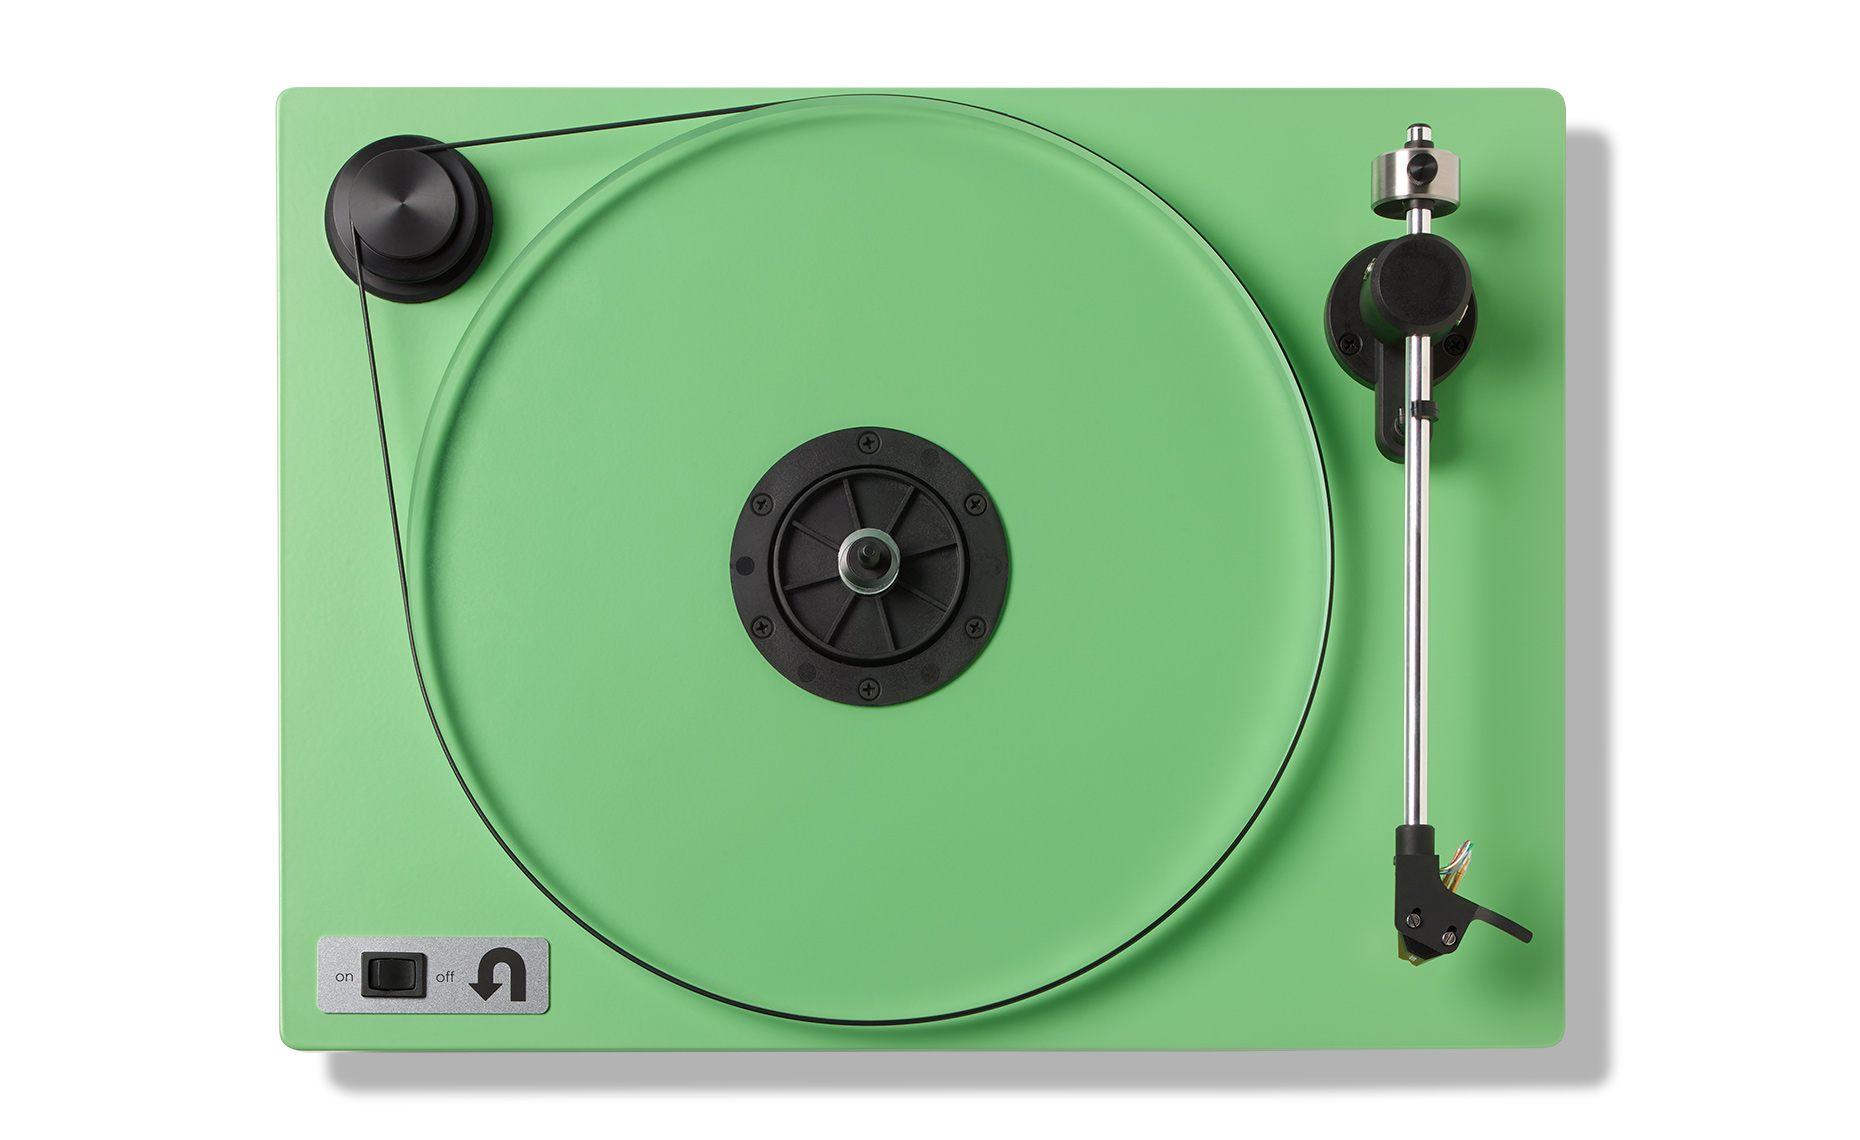 Green-Turntable-overhead-View-26705-F